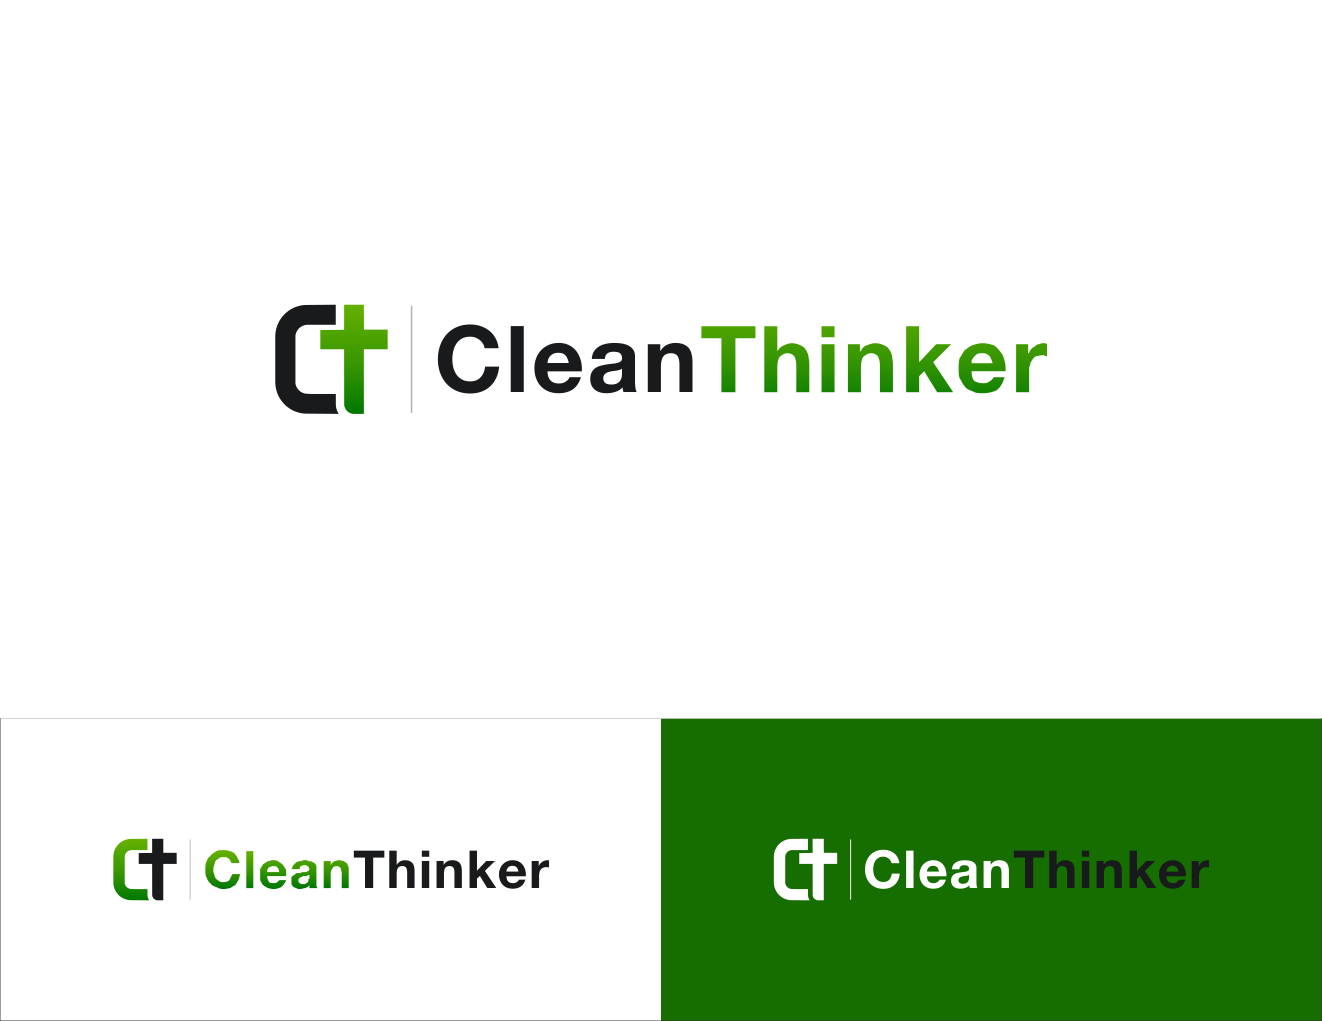 Create a unique design for CleanThinker